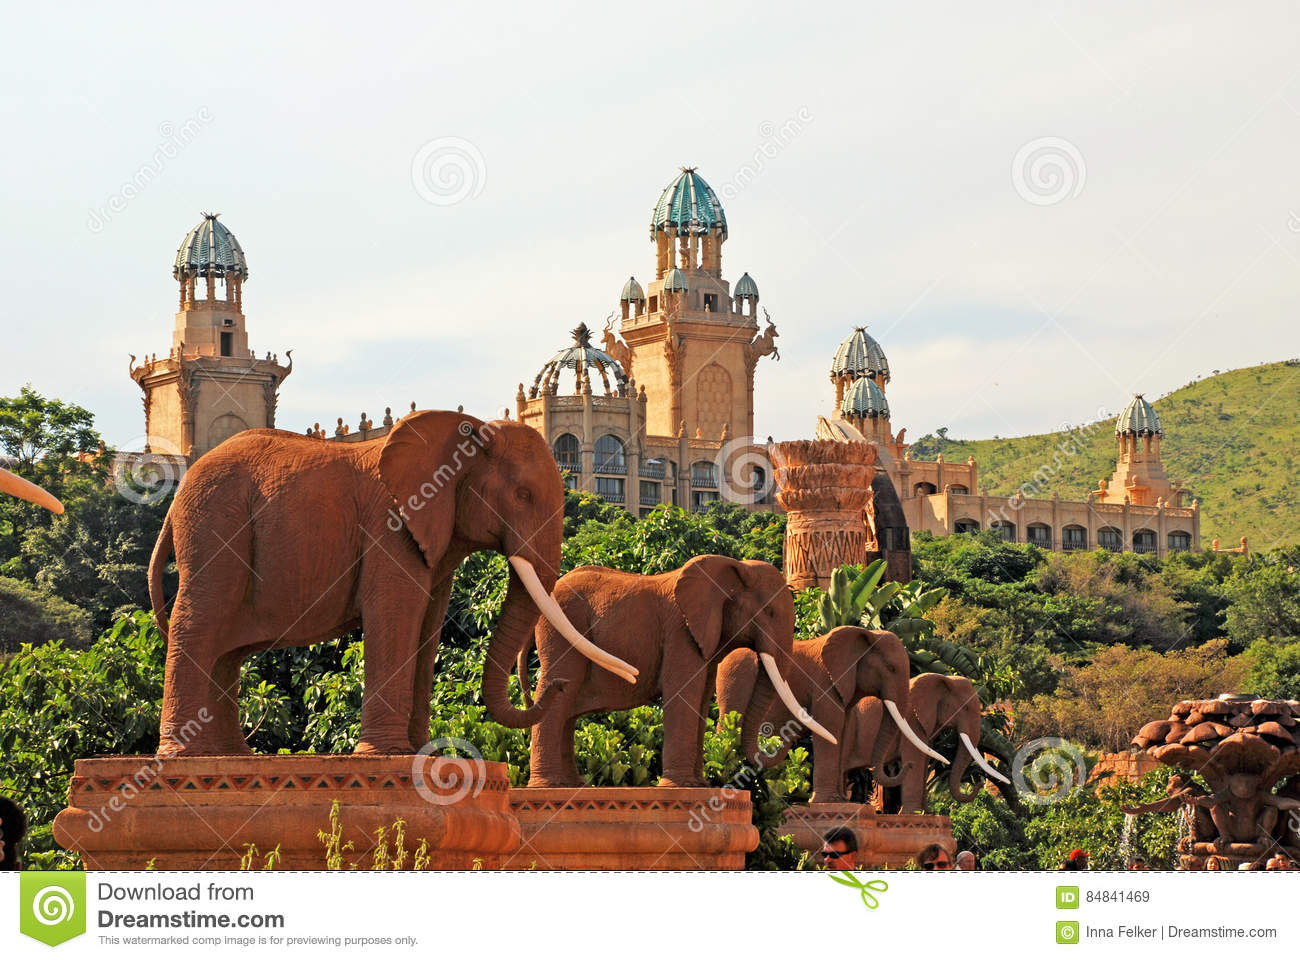 Elephant statues on Bridge of Time in Sun City, South Africa.